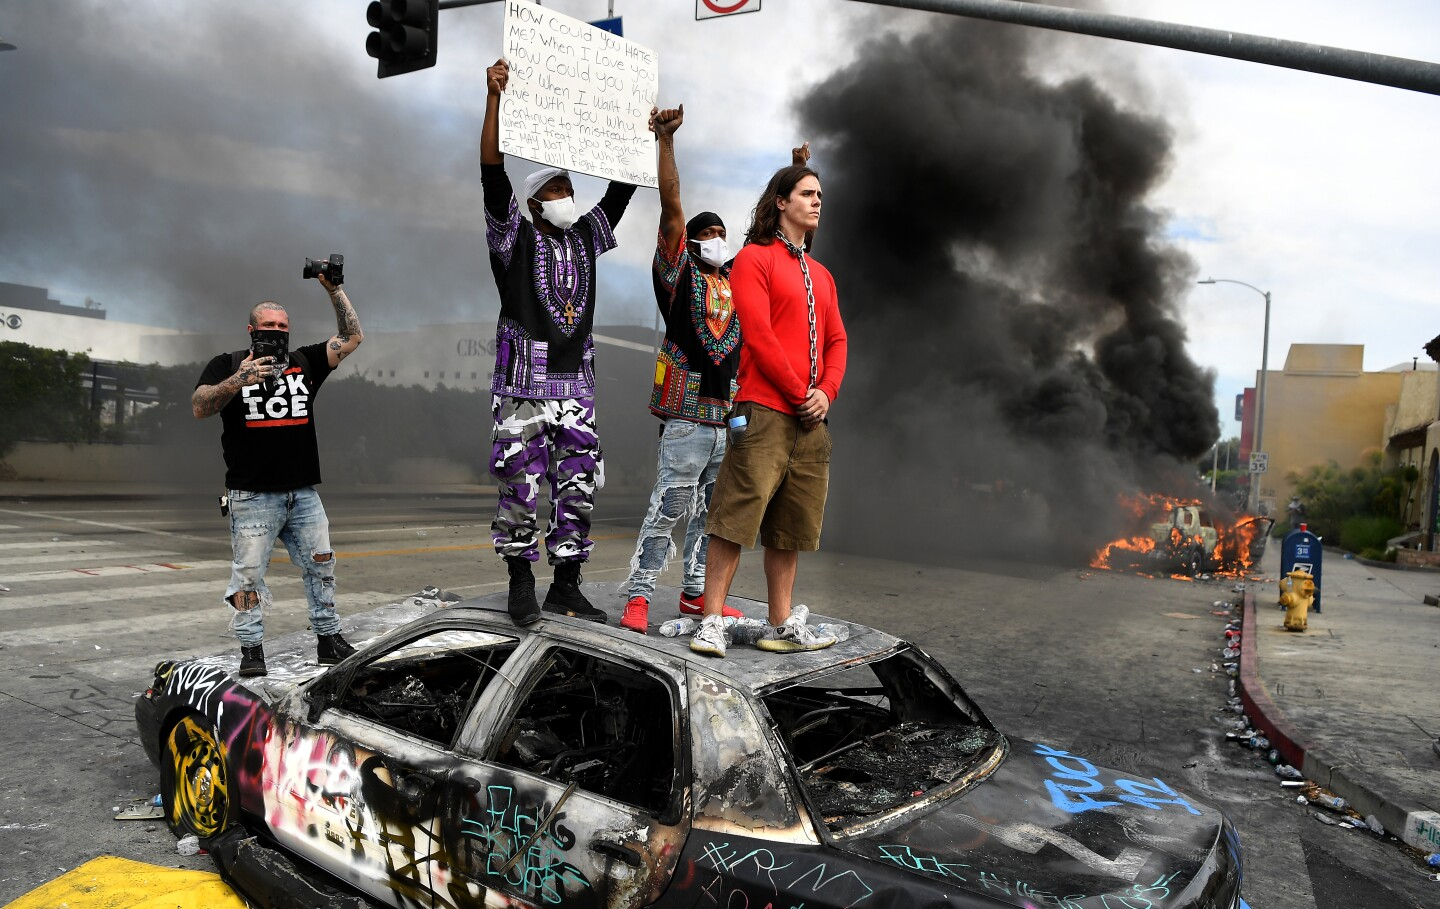 Protestors stand on top of a burned LAPD cruiser as another burns at 3rd Street and Fairfax Avenue in Los Angeles on Saturday.